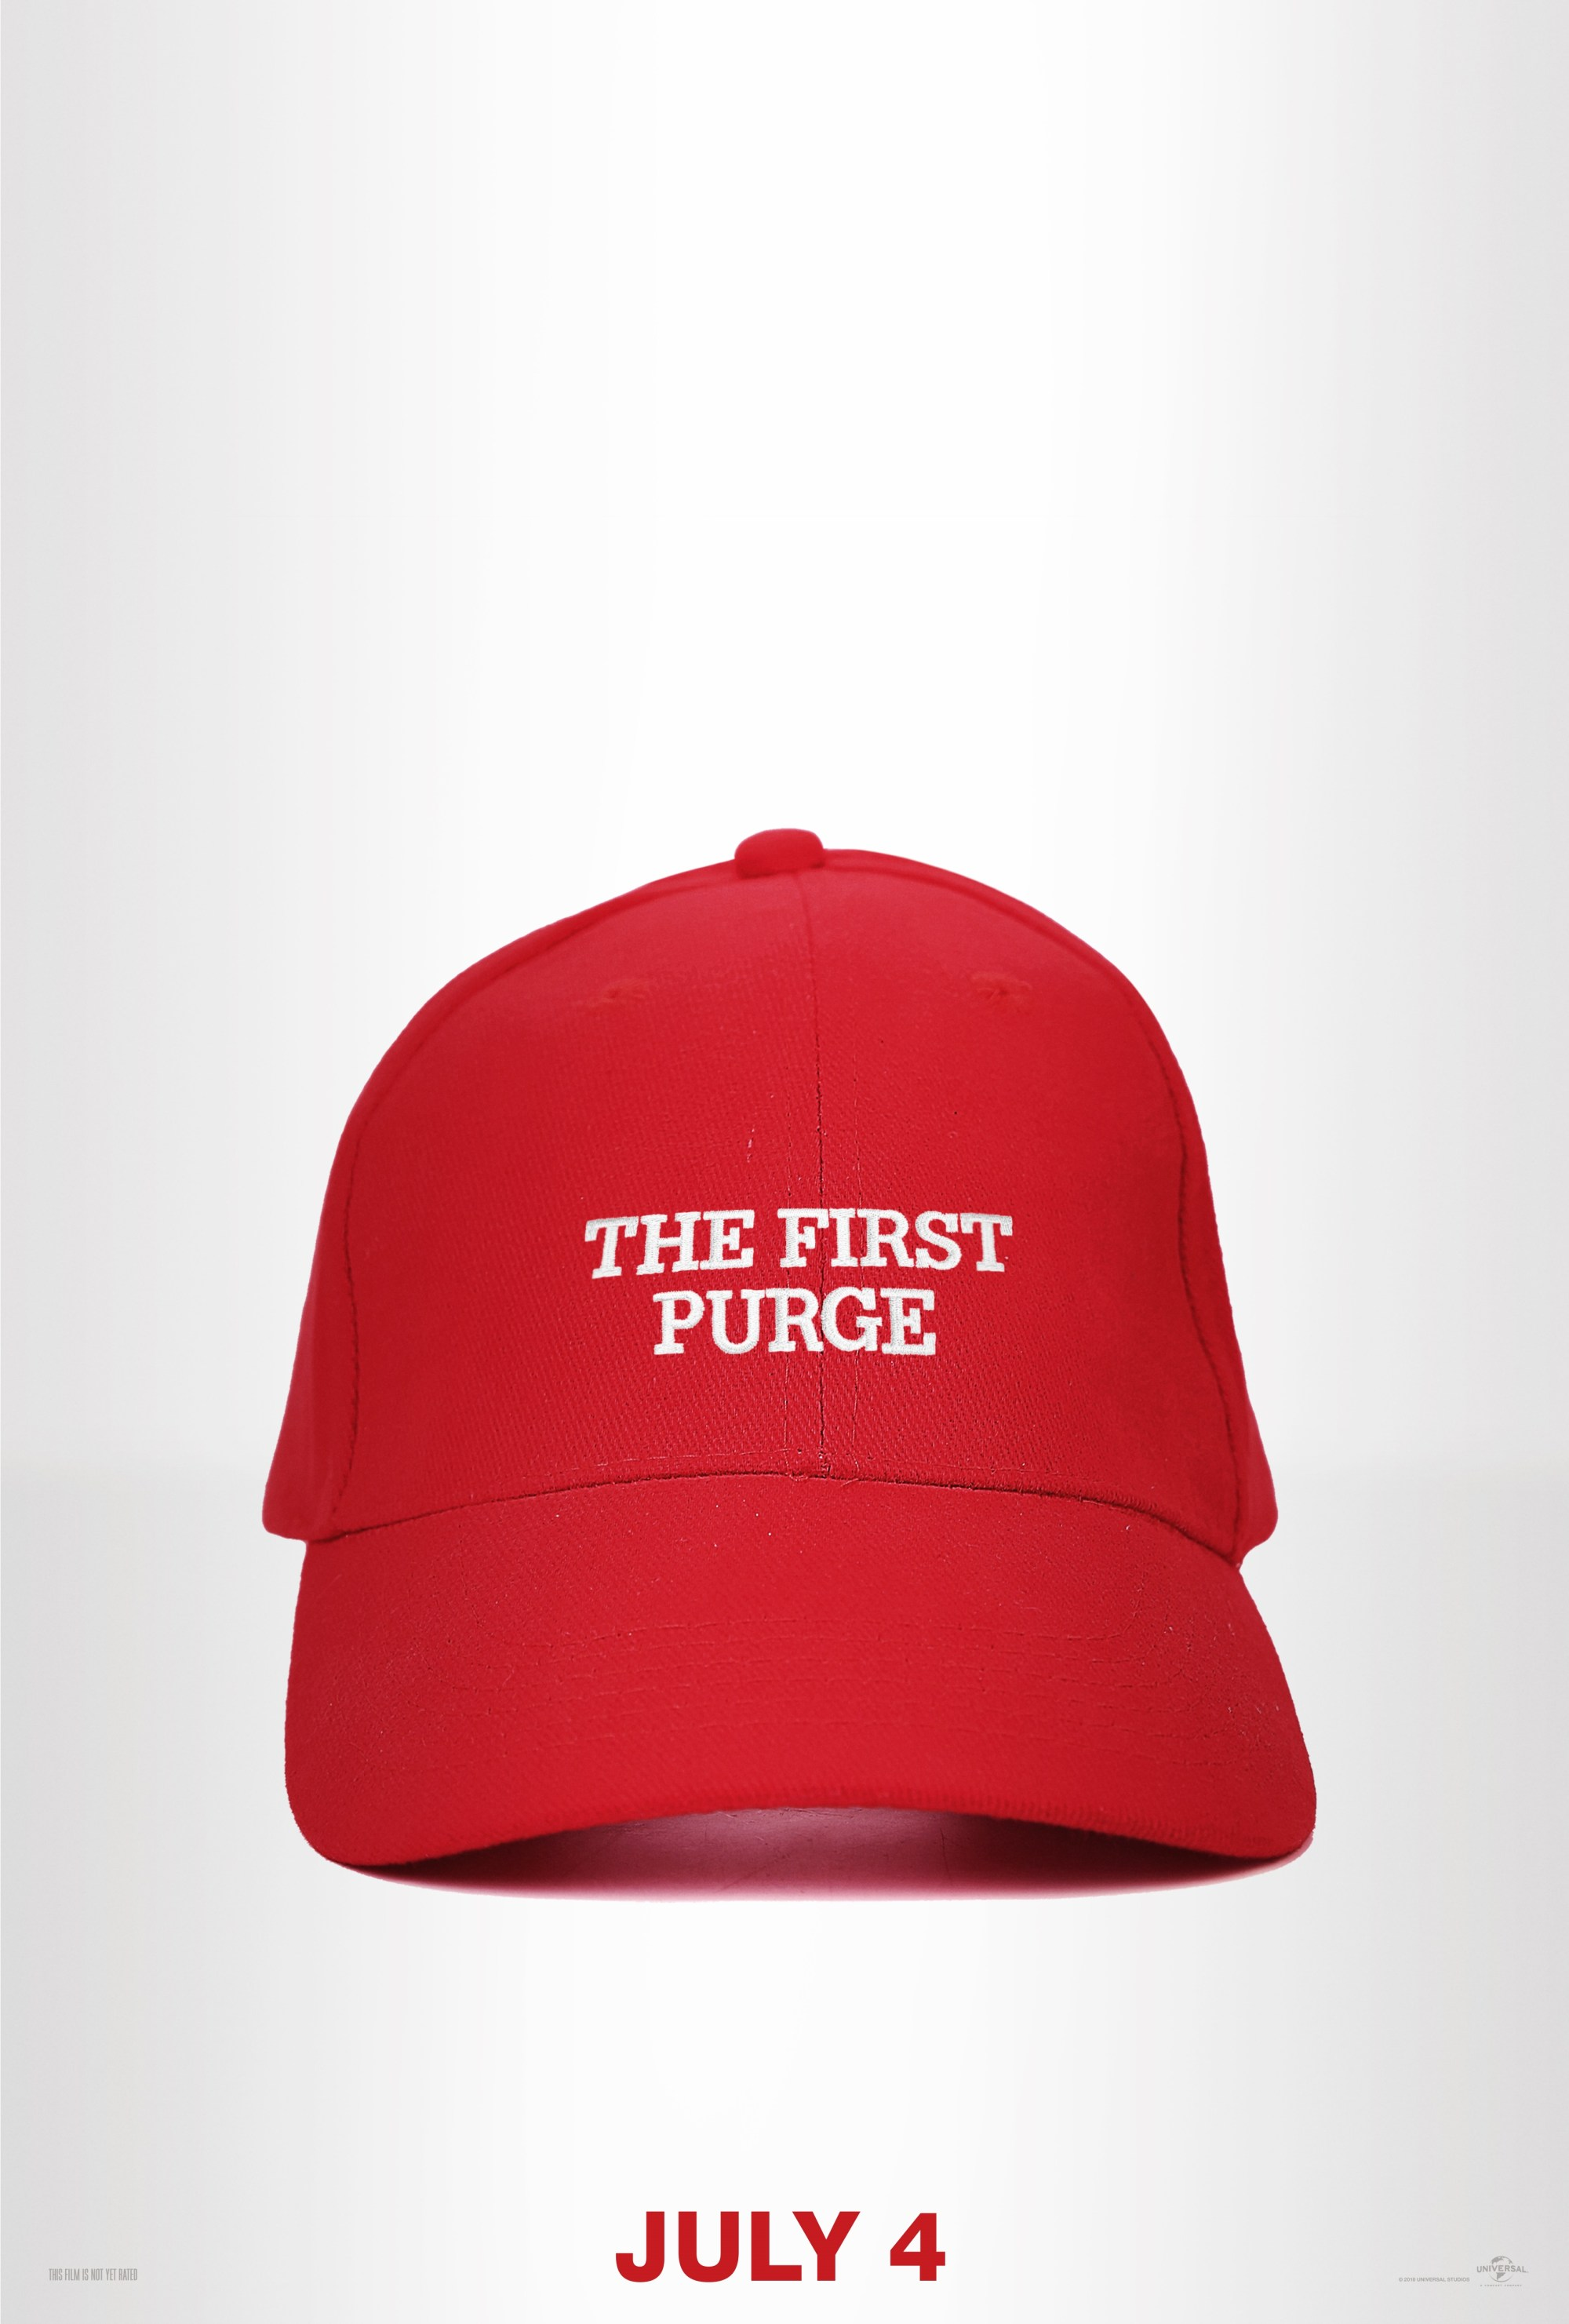 The First Purge - Poster